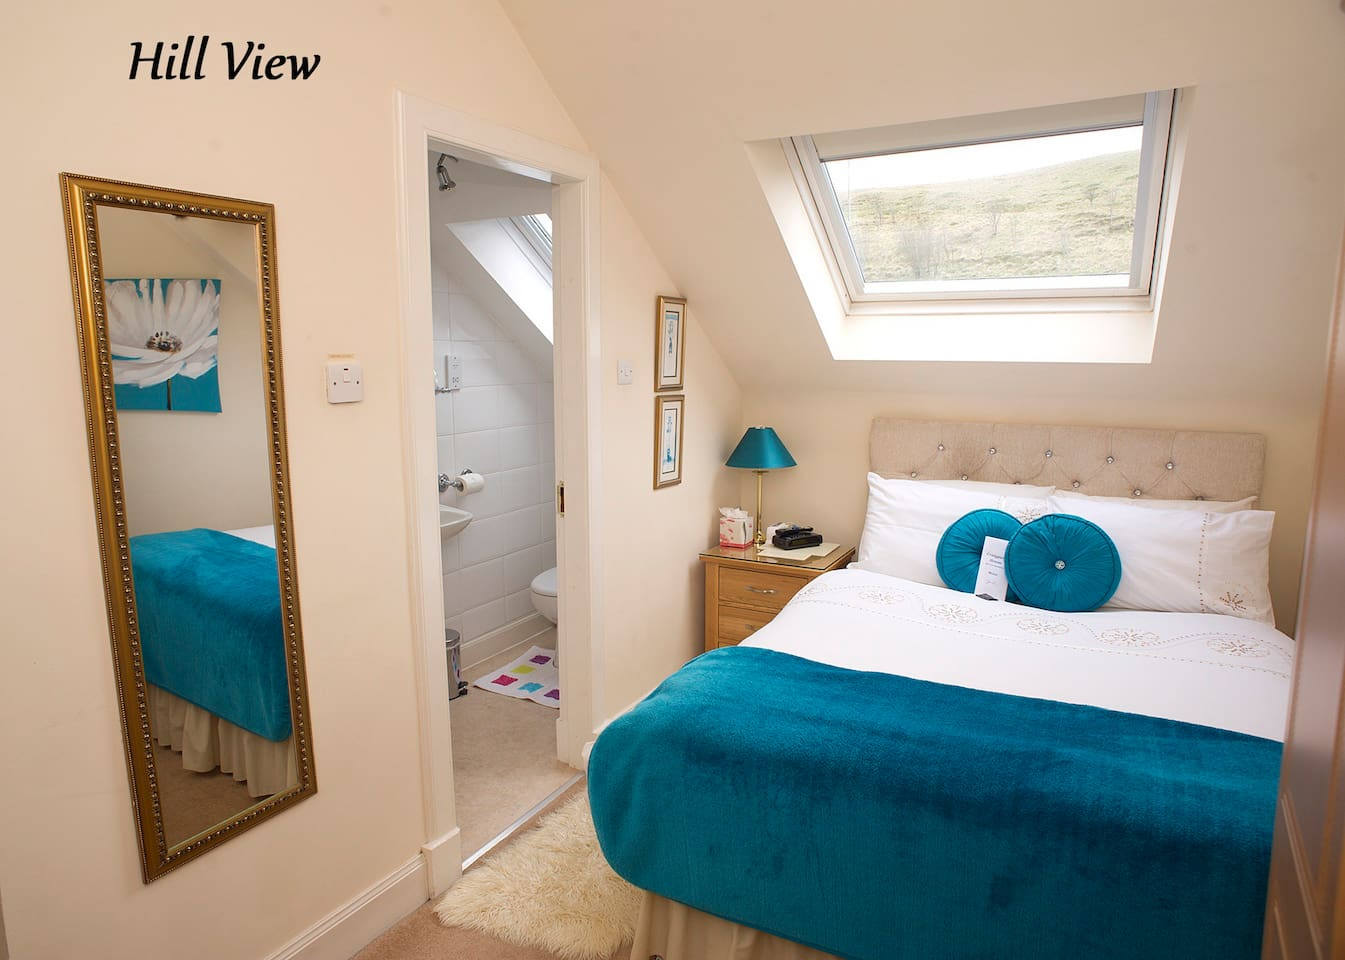 """Bright and airy """"Hill View"""" room available only for one person"""